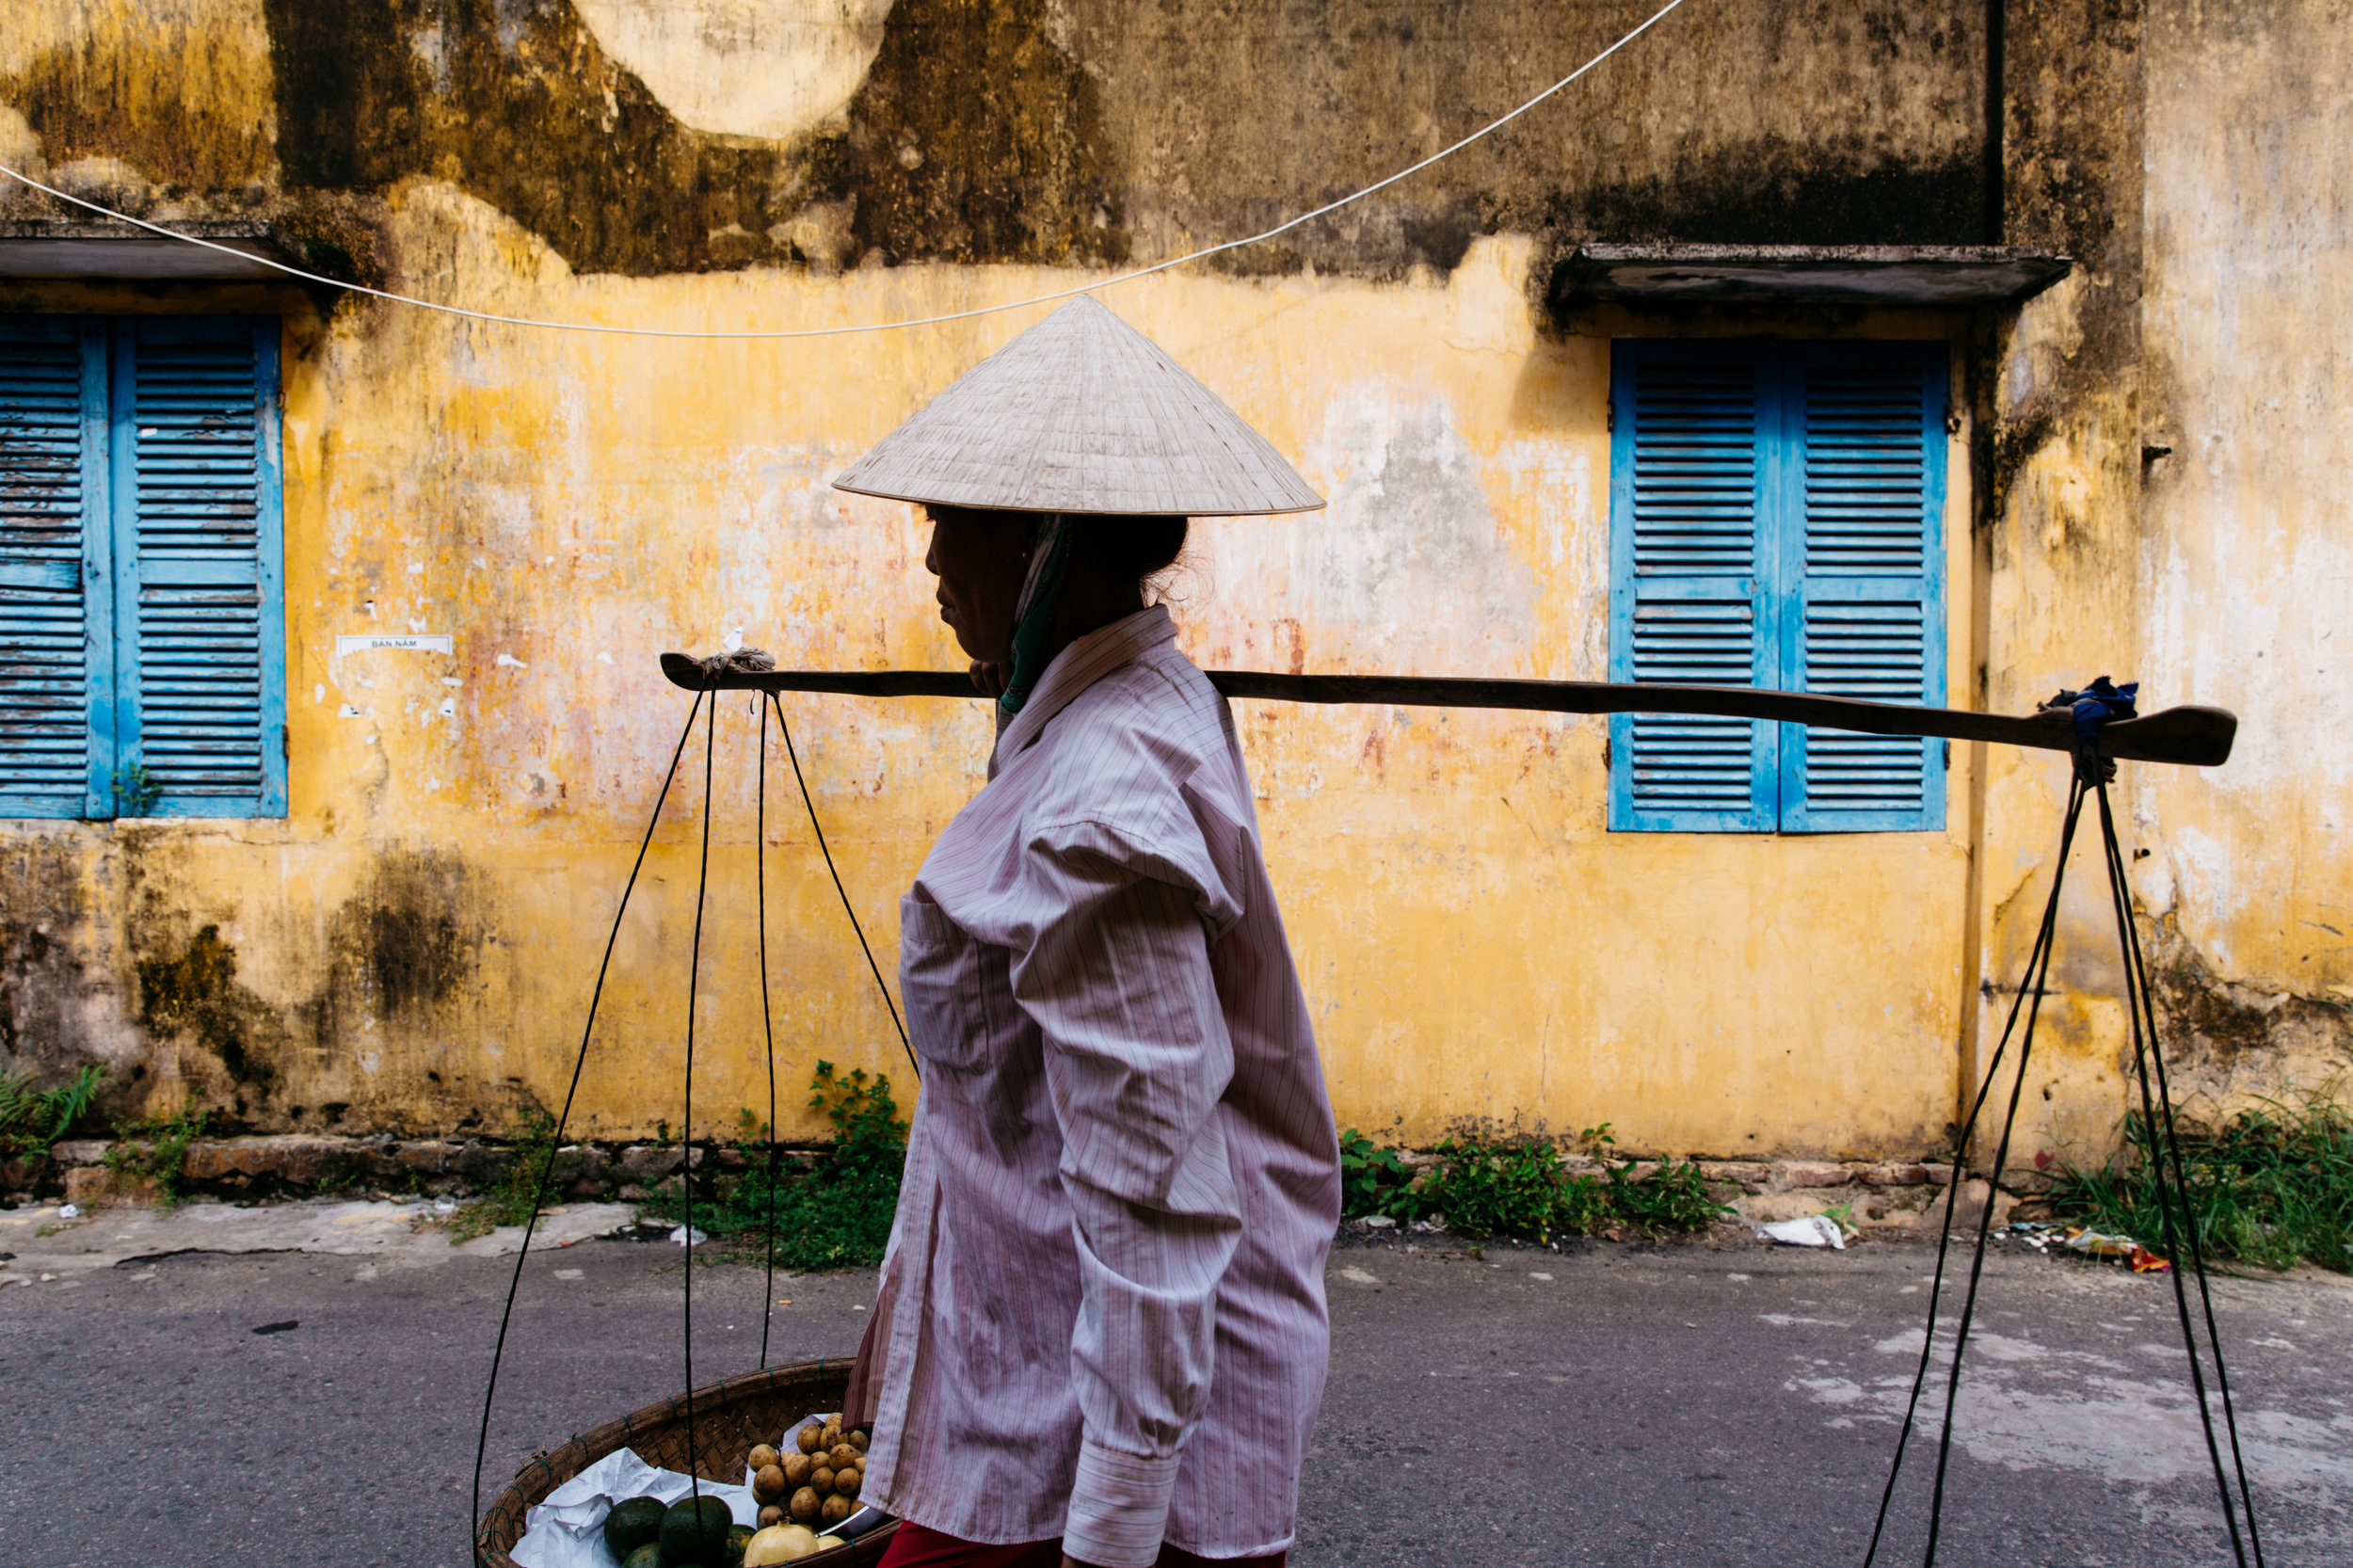 Delicious-HoiAnVietnam-Hoi An Old Town Scenes-09.jpg